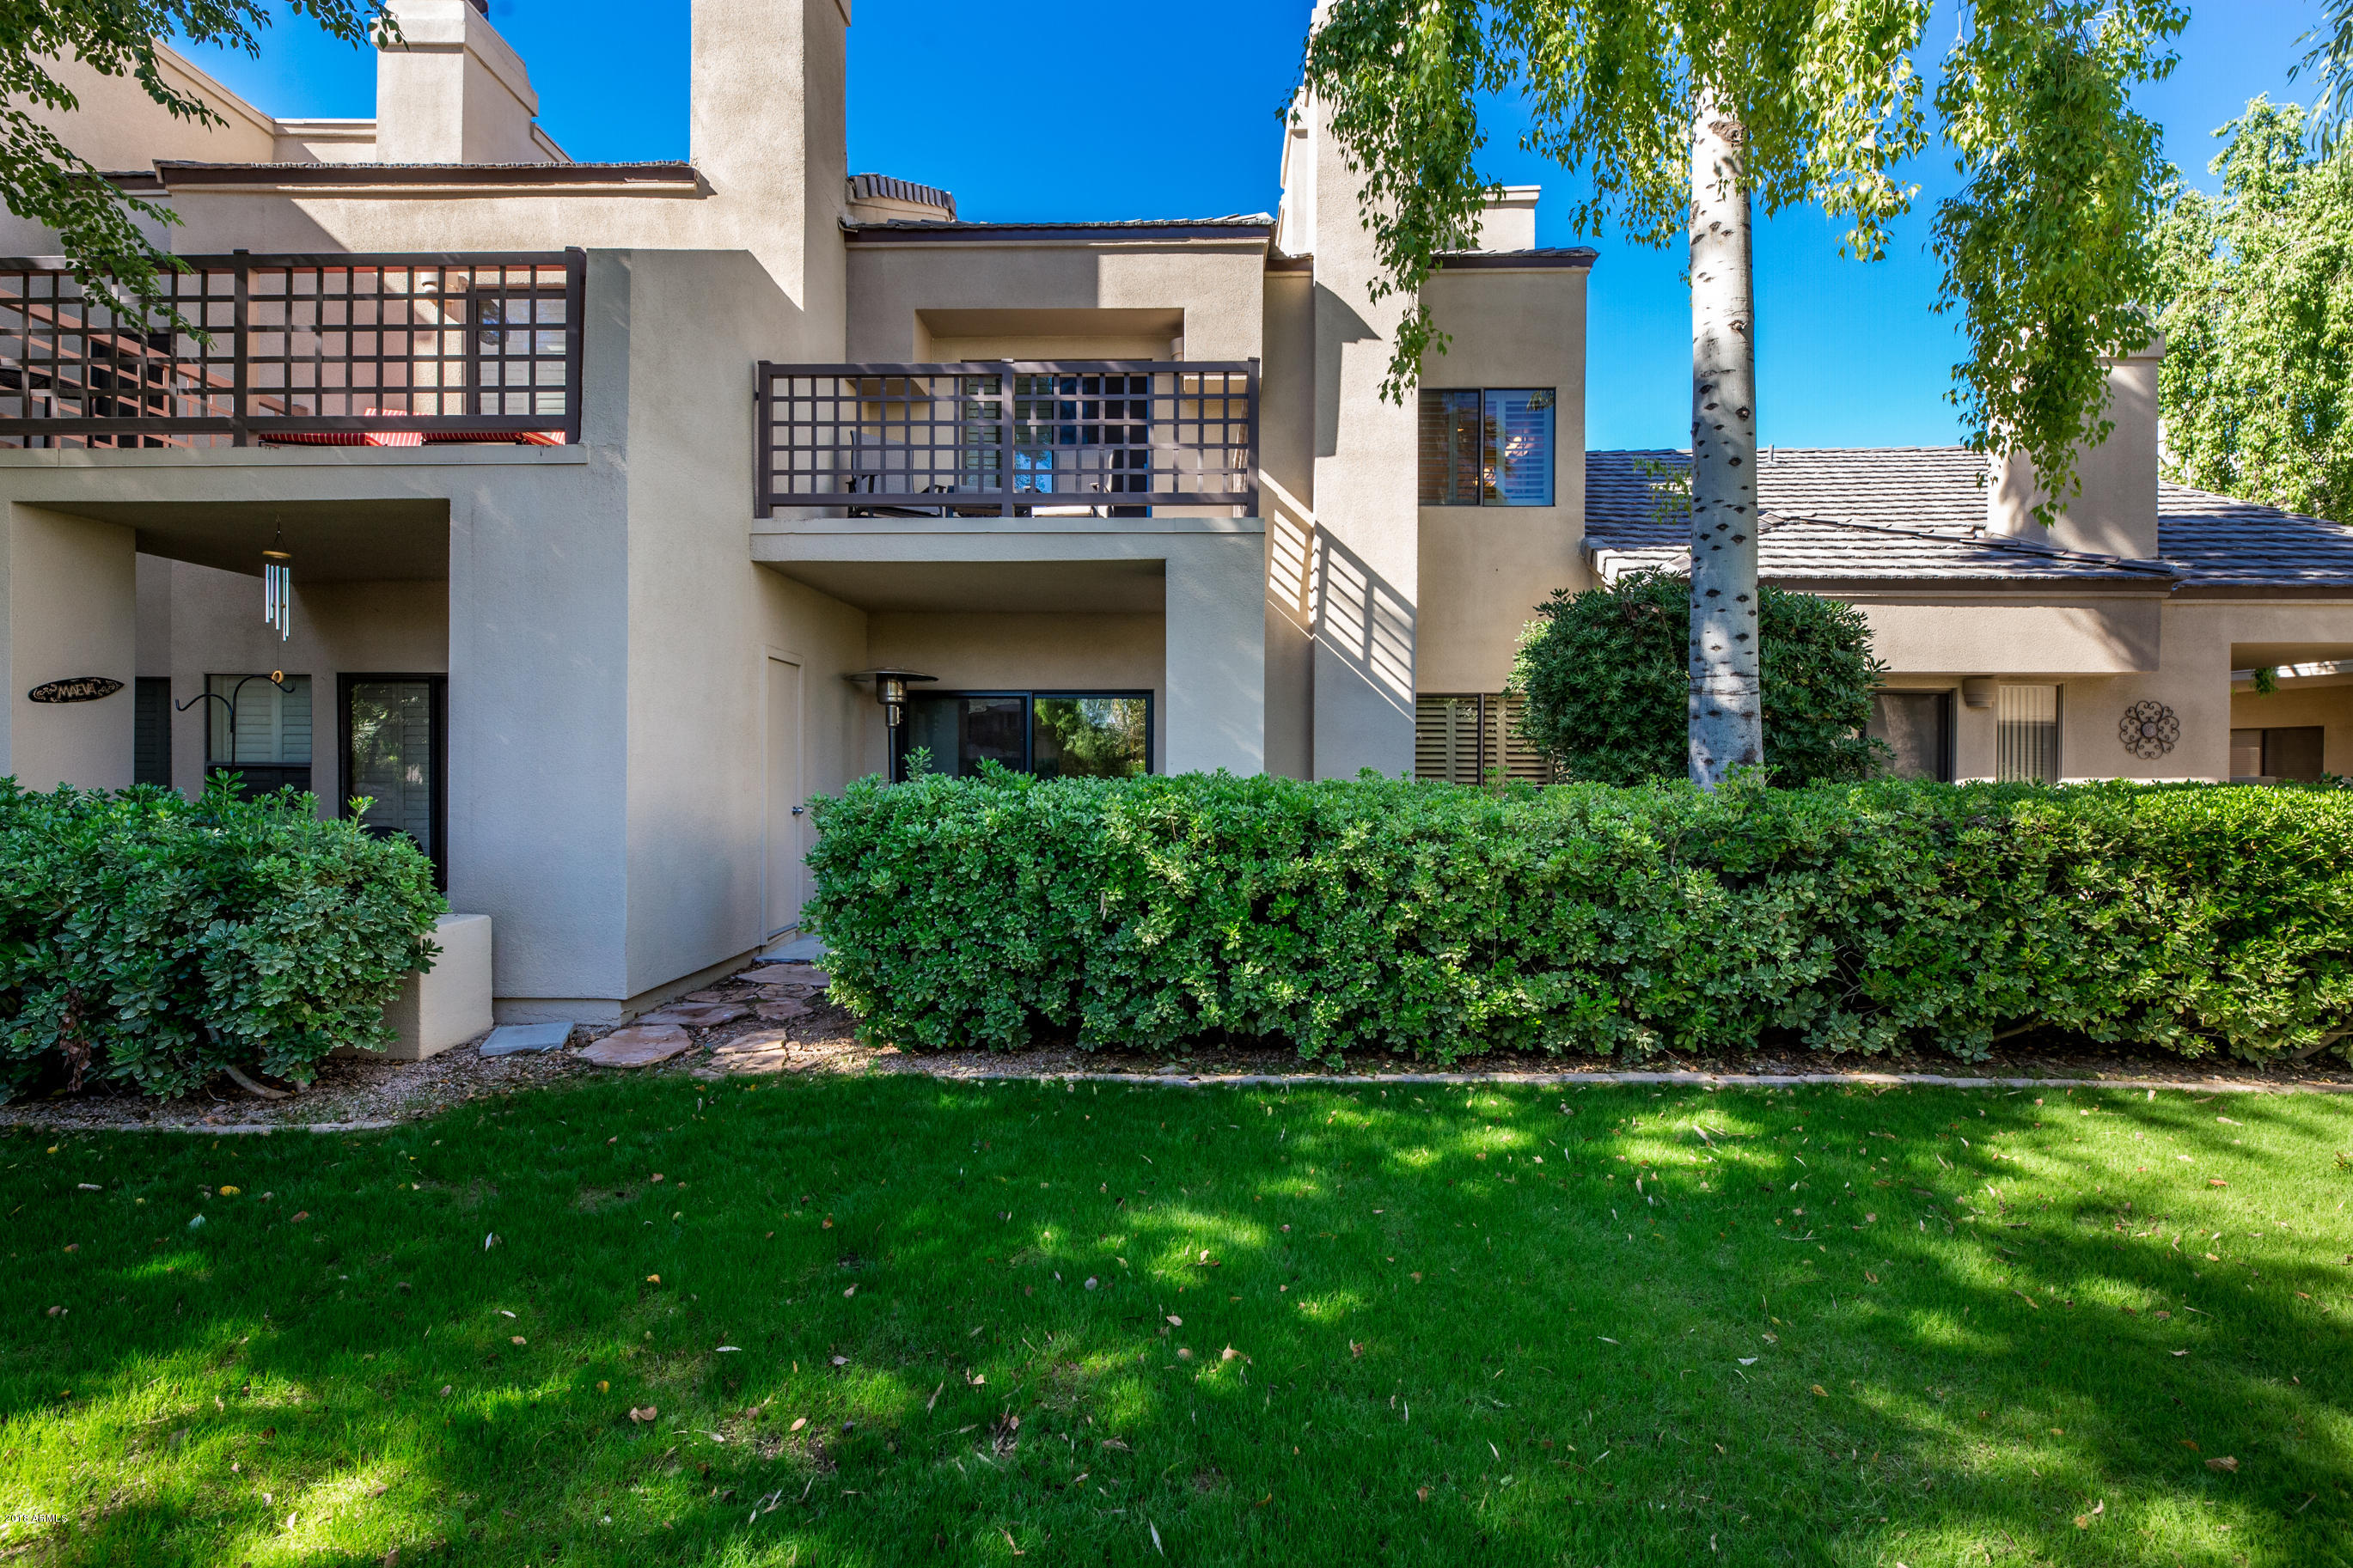 MLS 5842800 7272 E GAINEY RANCH Road Unit 95, Scottsdale, AZ 85258 Scottsdale AZ Gainey Ranch